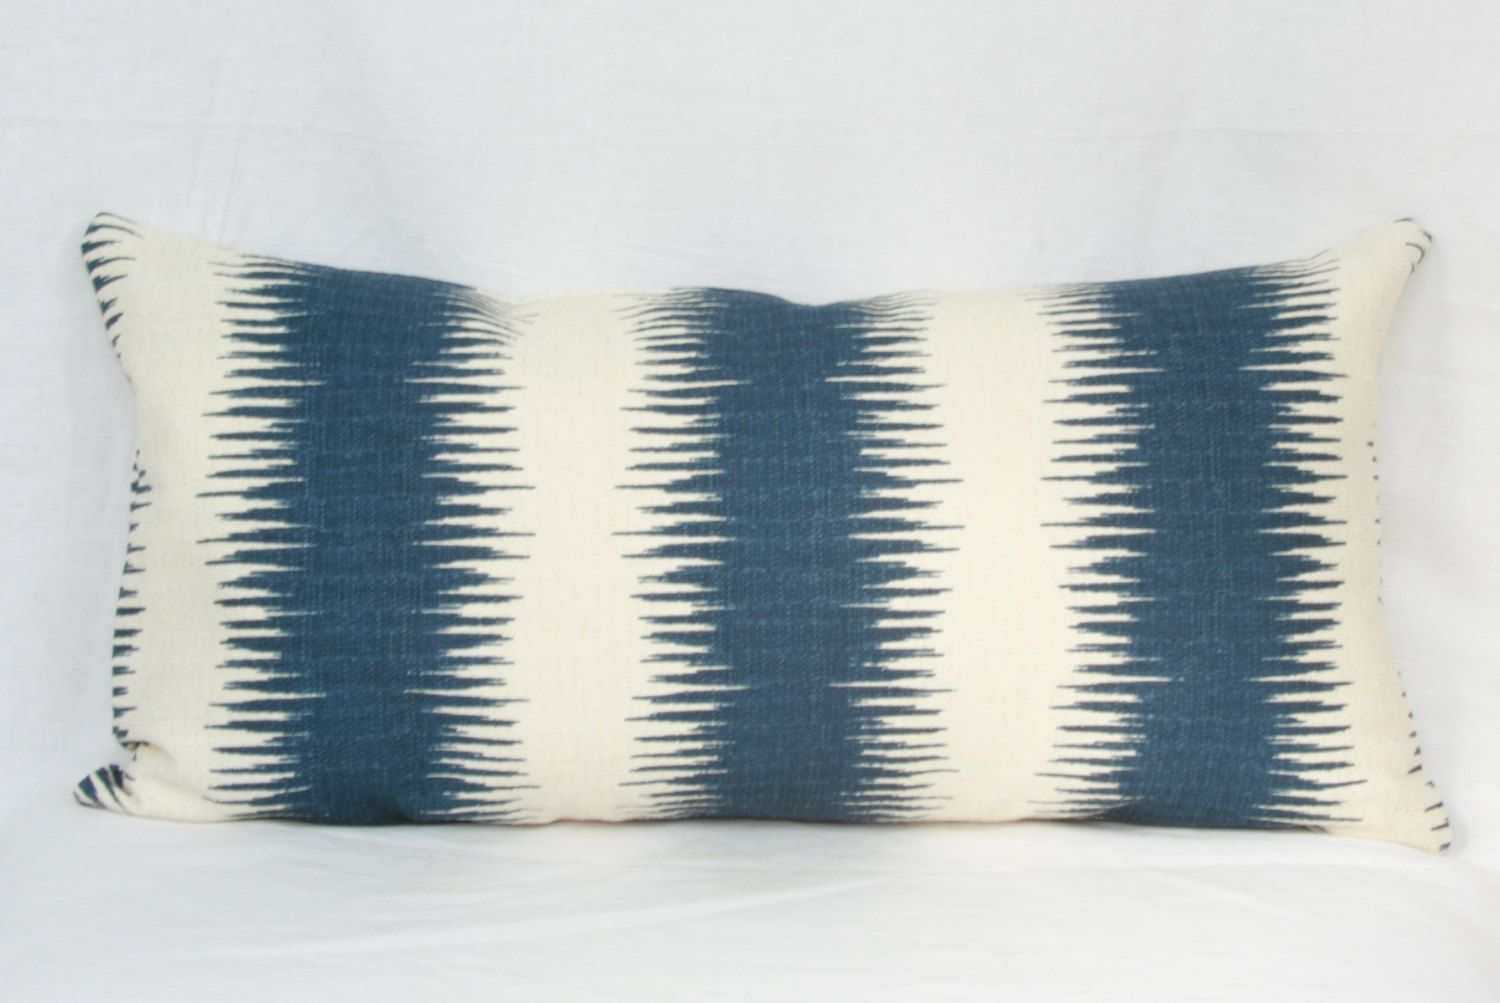 16X26 Pillow Insert Captivating Blue Natural Tribal Stripe Throw Pillow Cover 12X20 12X24 14X24 Design Decoration